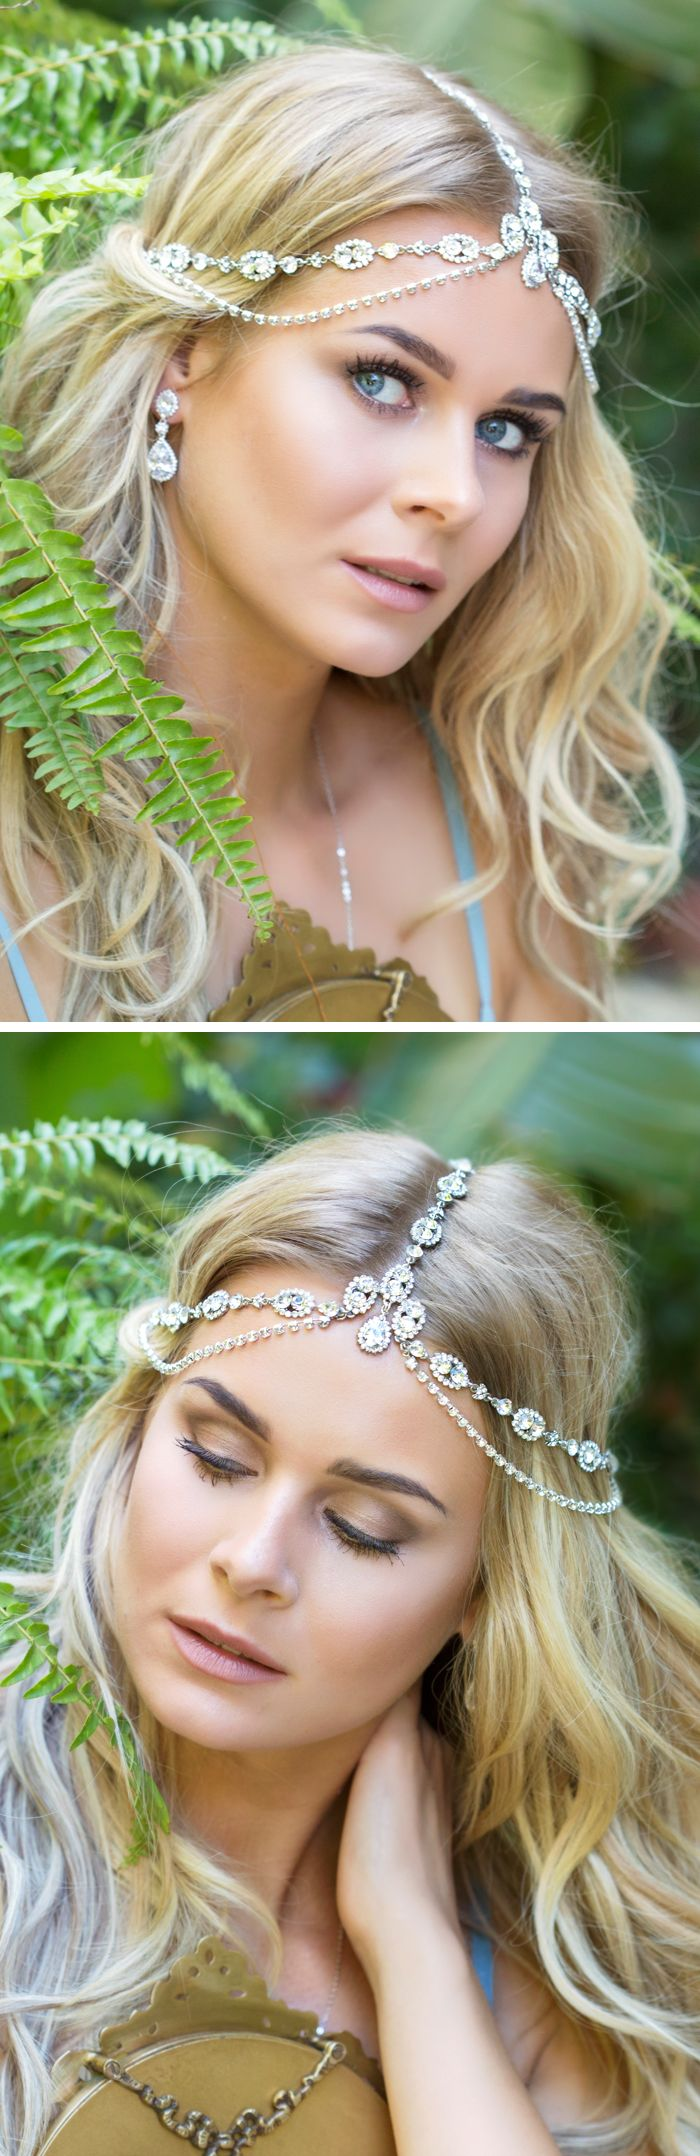 best wedding dreams boutique hair accessories images on